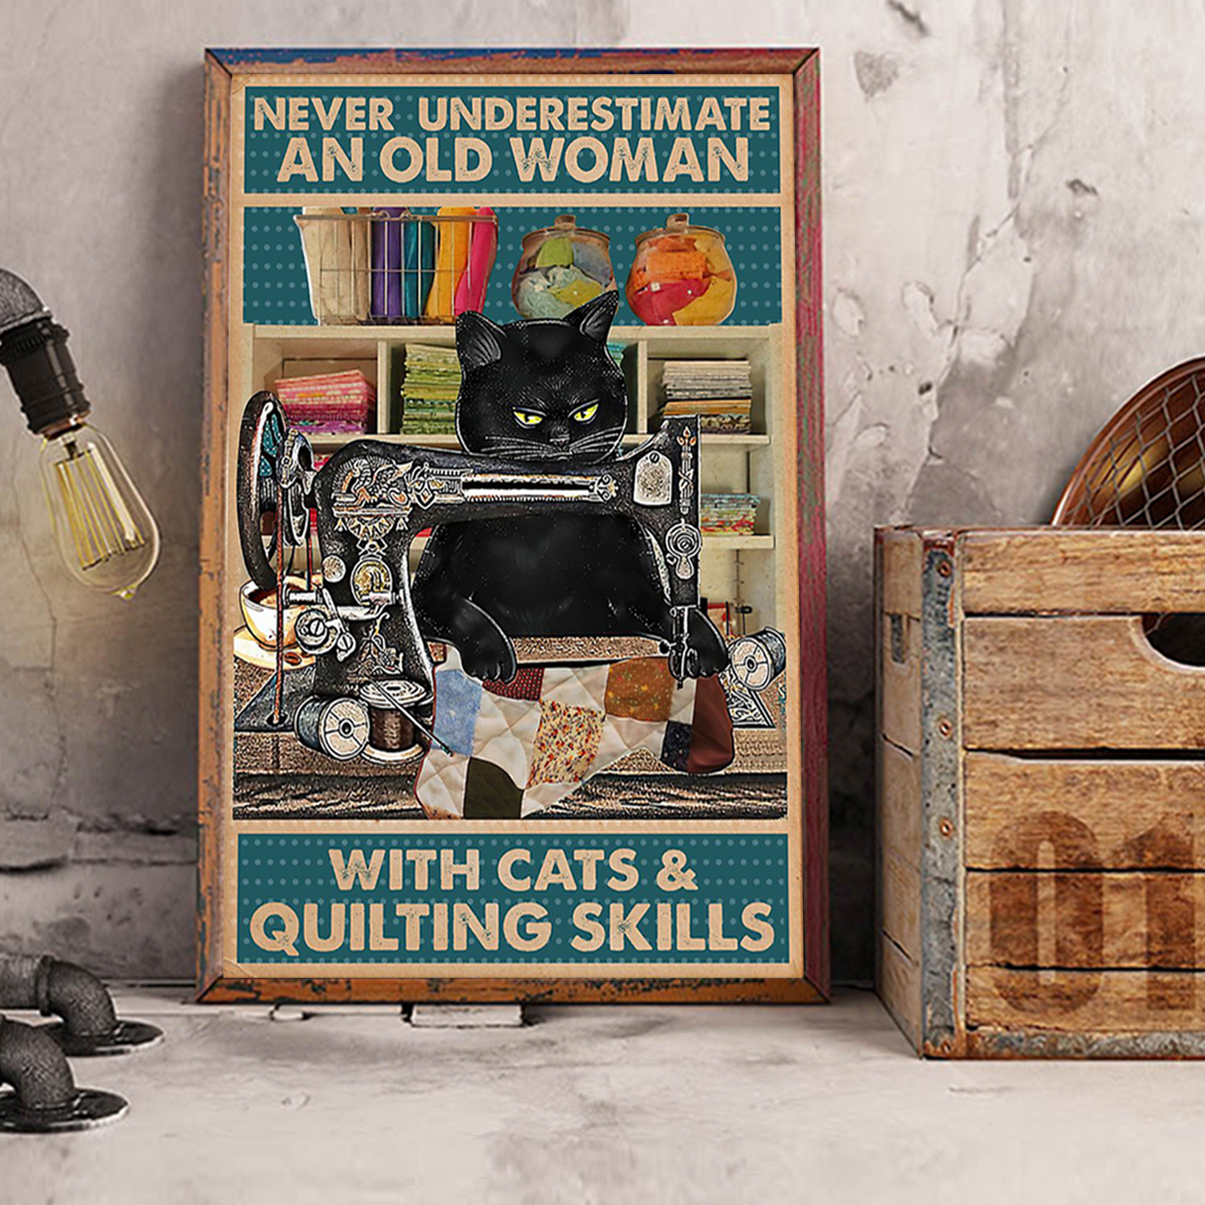 Never underestimate an old woman with cats and quilting skills poster A2